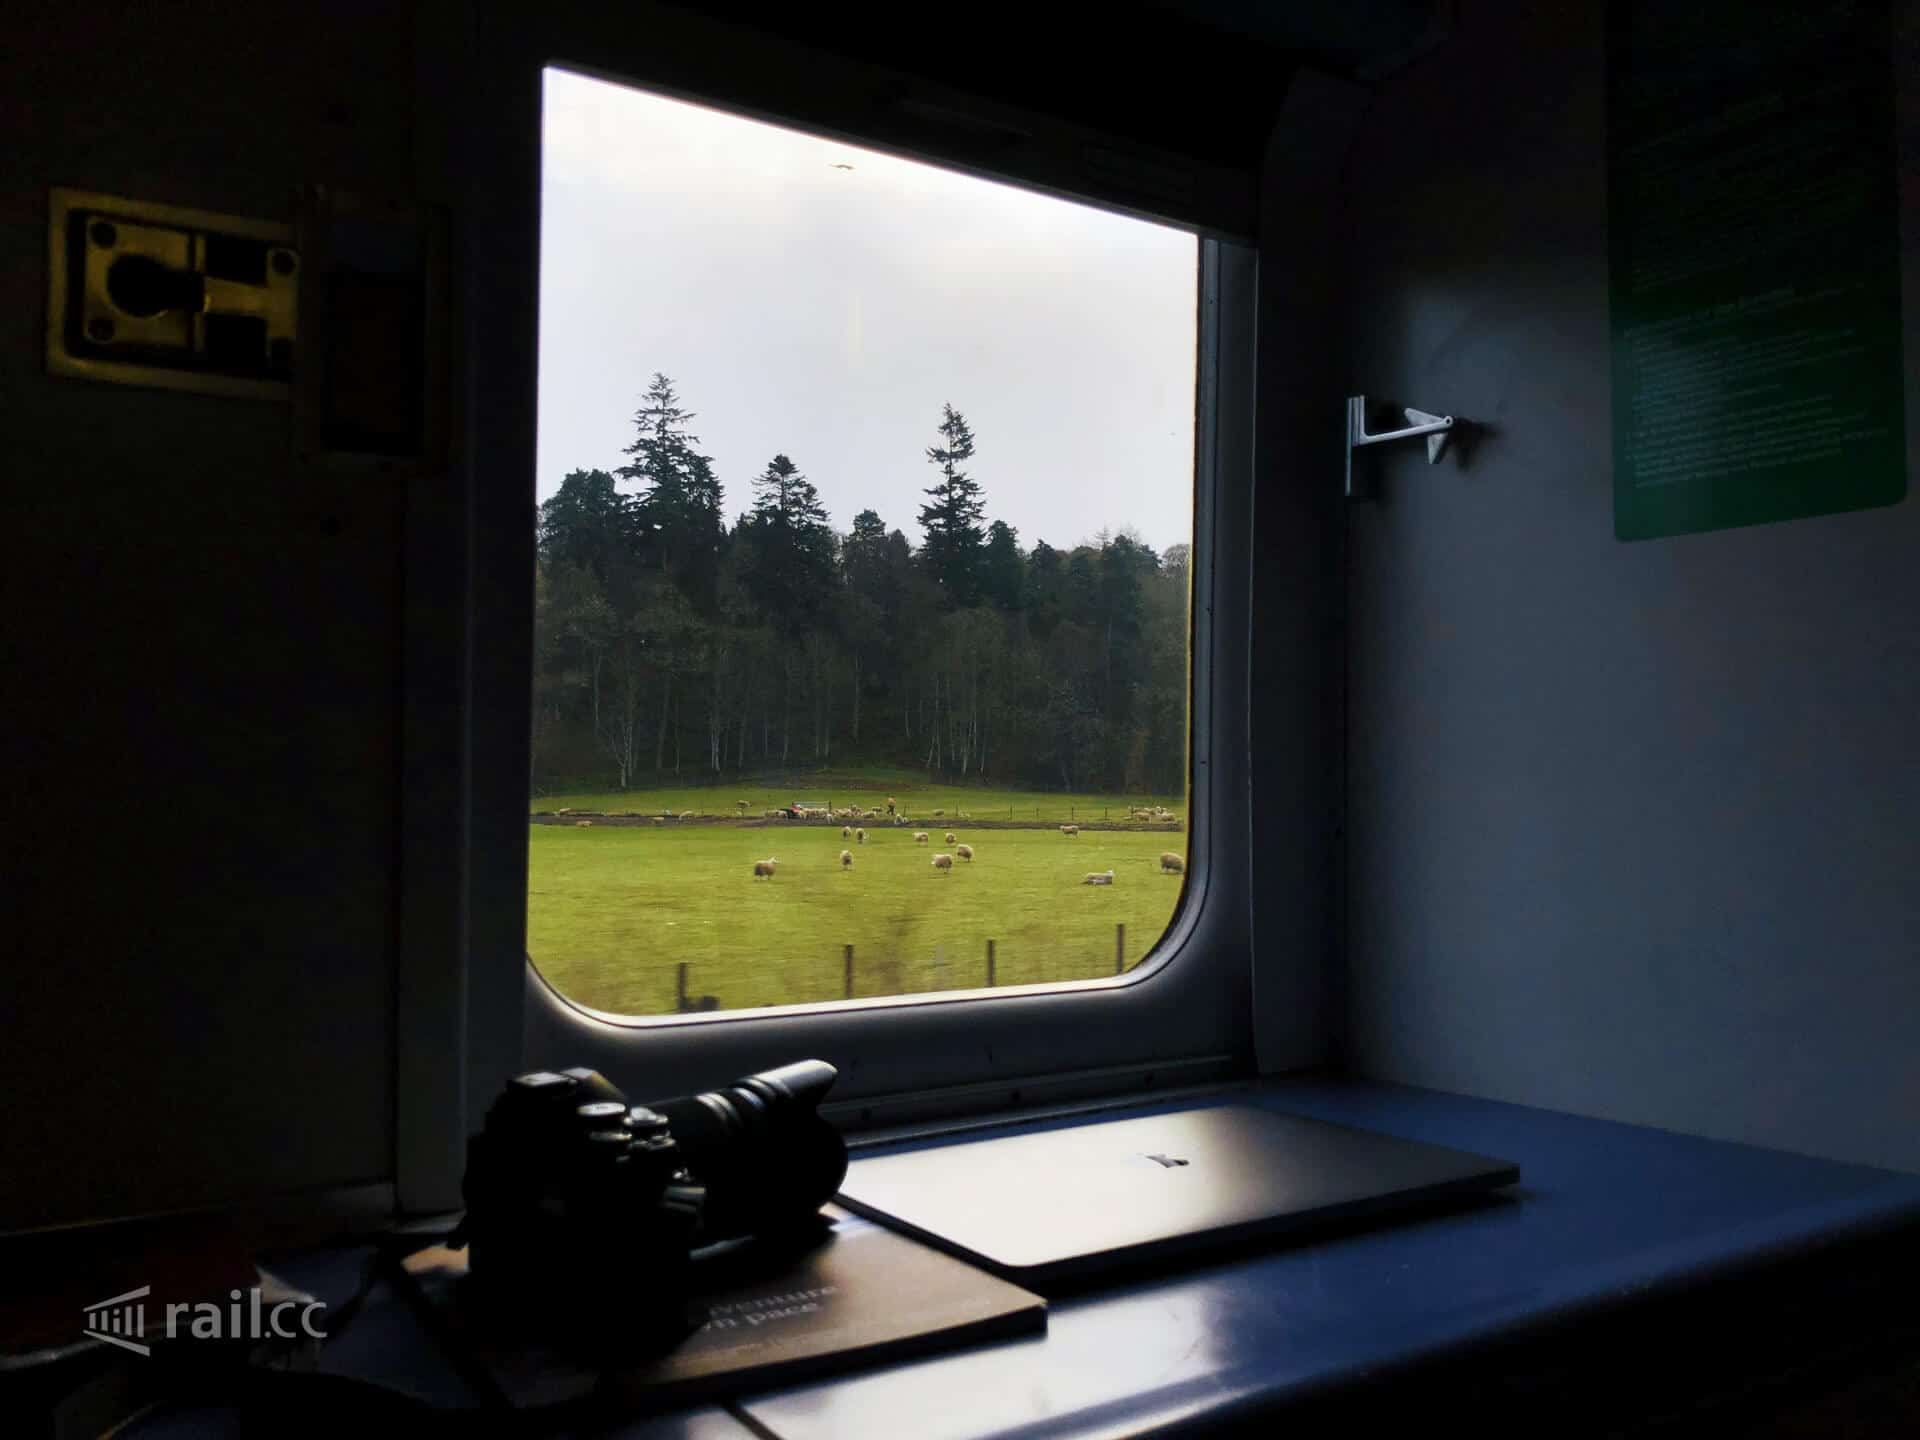 Morning views out of the Caledonian Sleeper